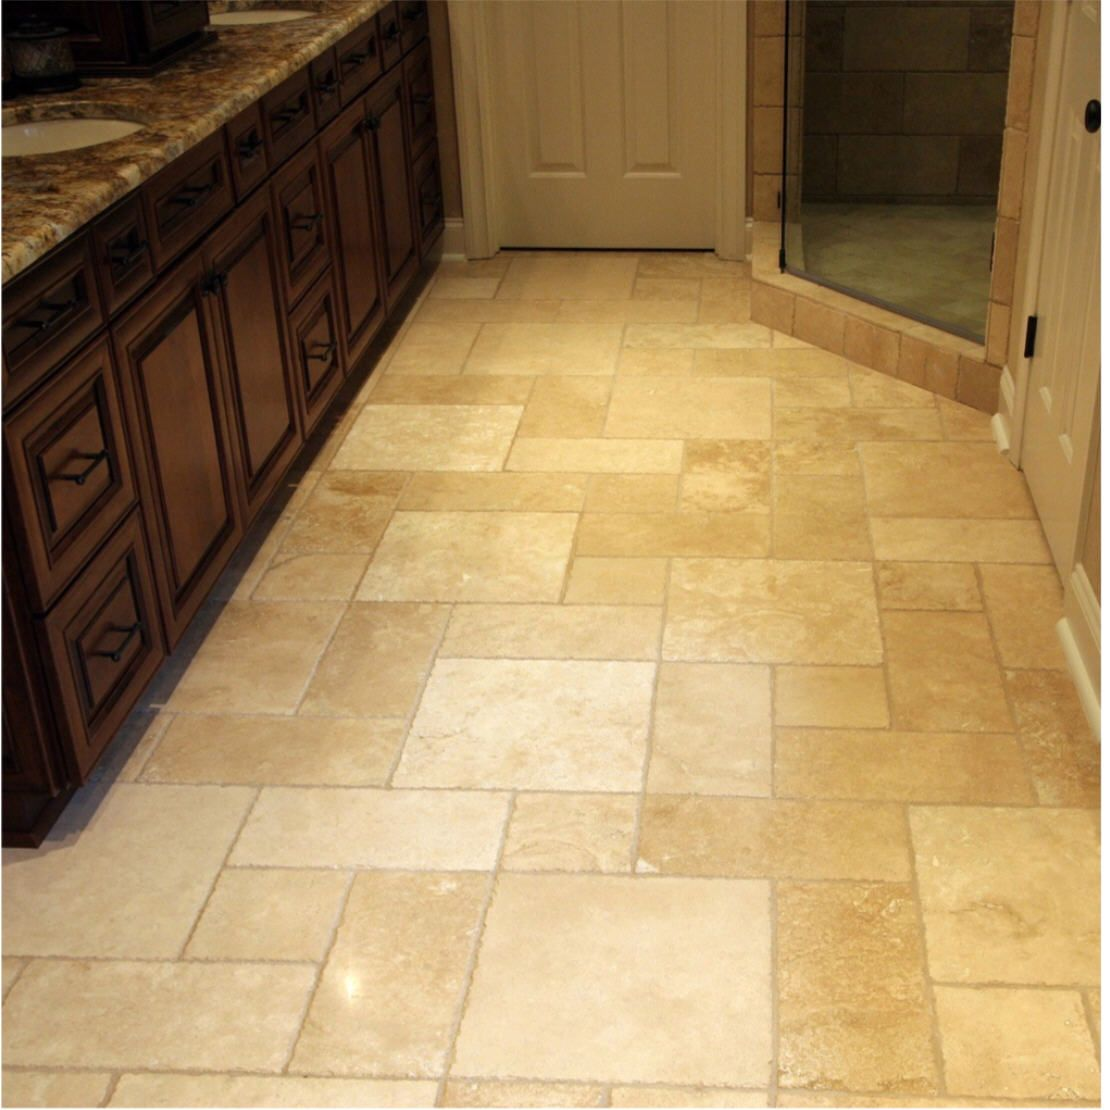 Travertine Tile Floor Pattern Called Hopscotch Affordable Design